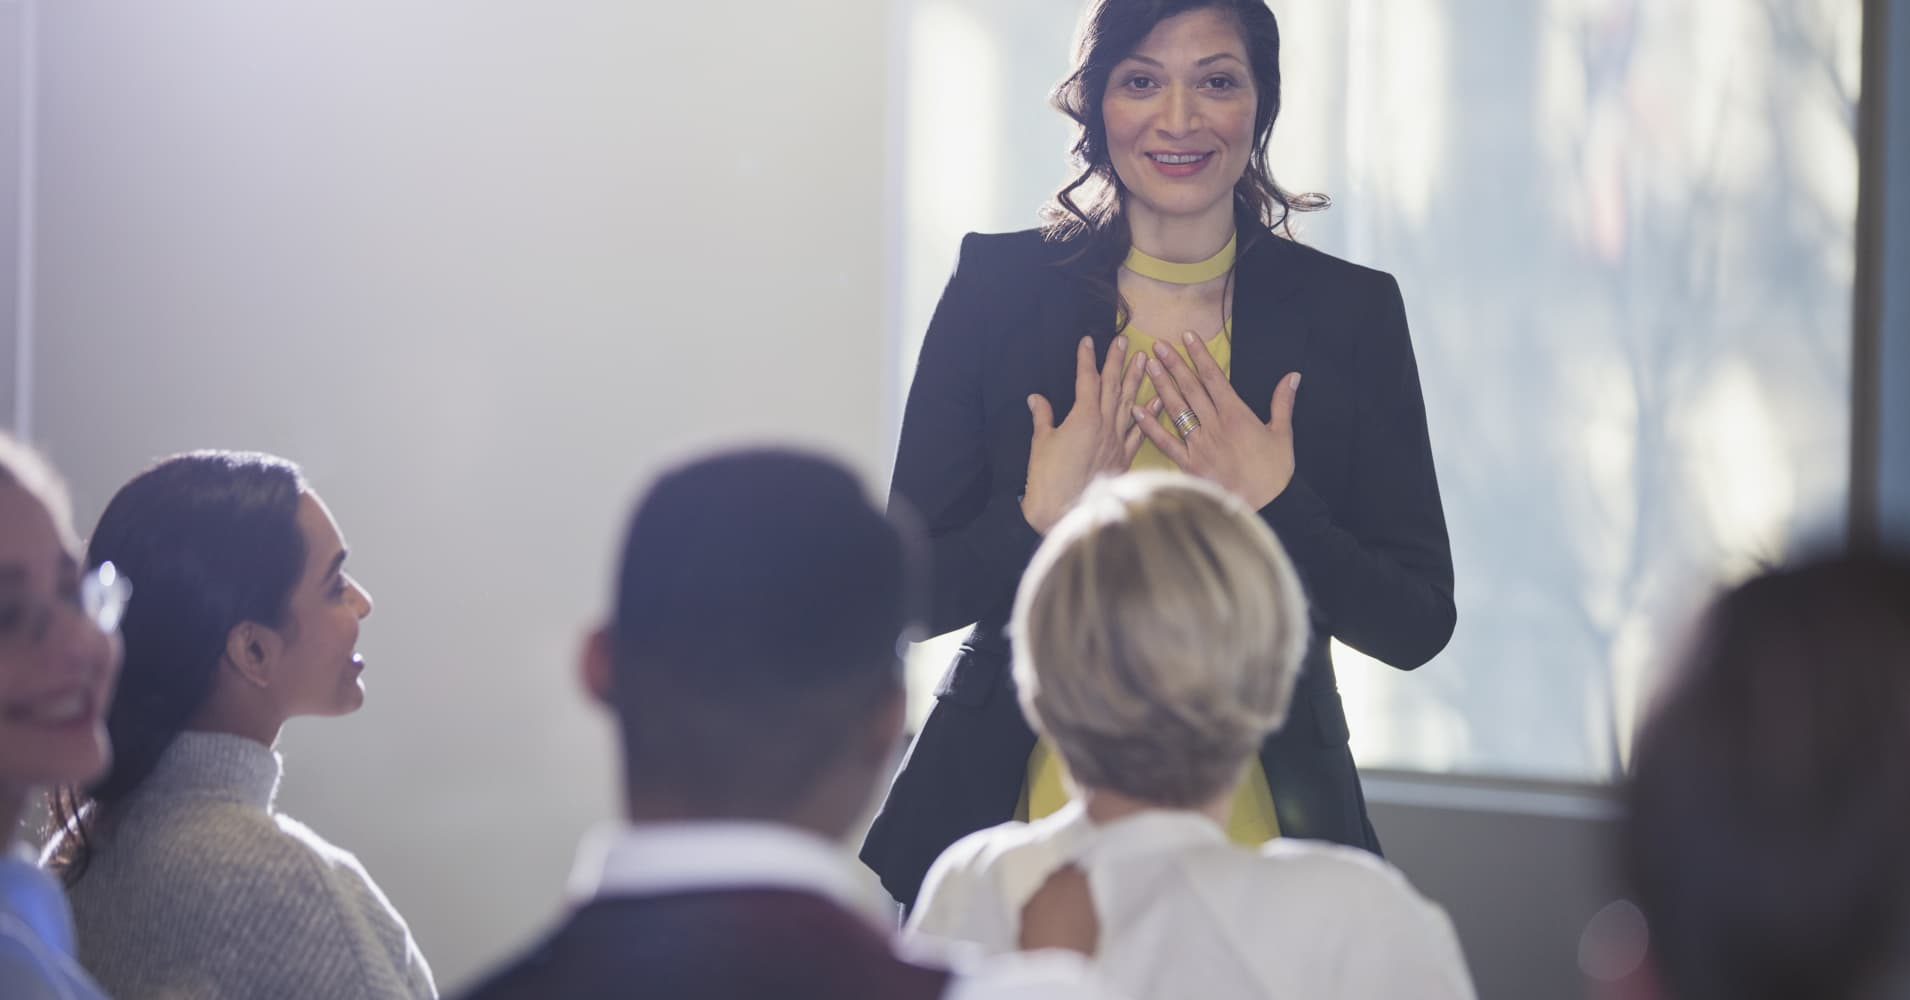 Businesswoman gesturing, leading conference meeting